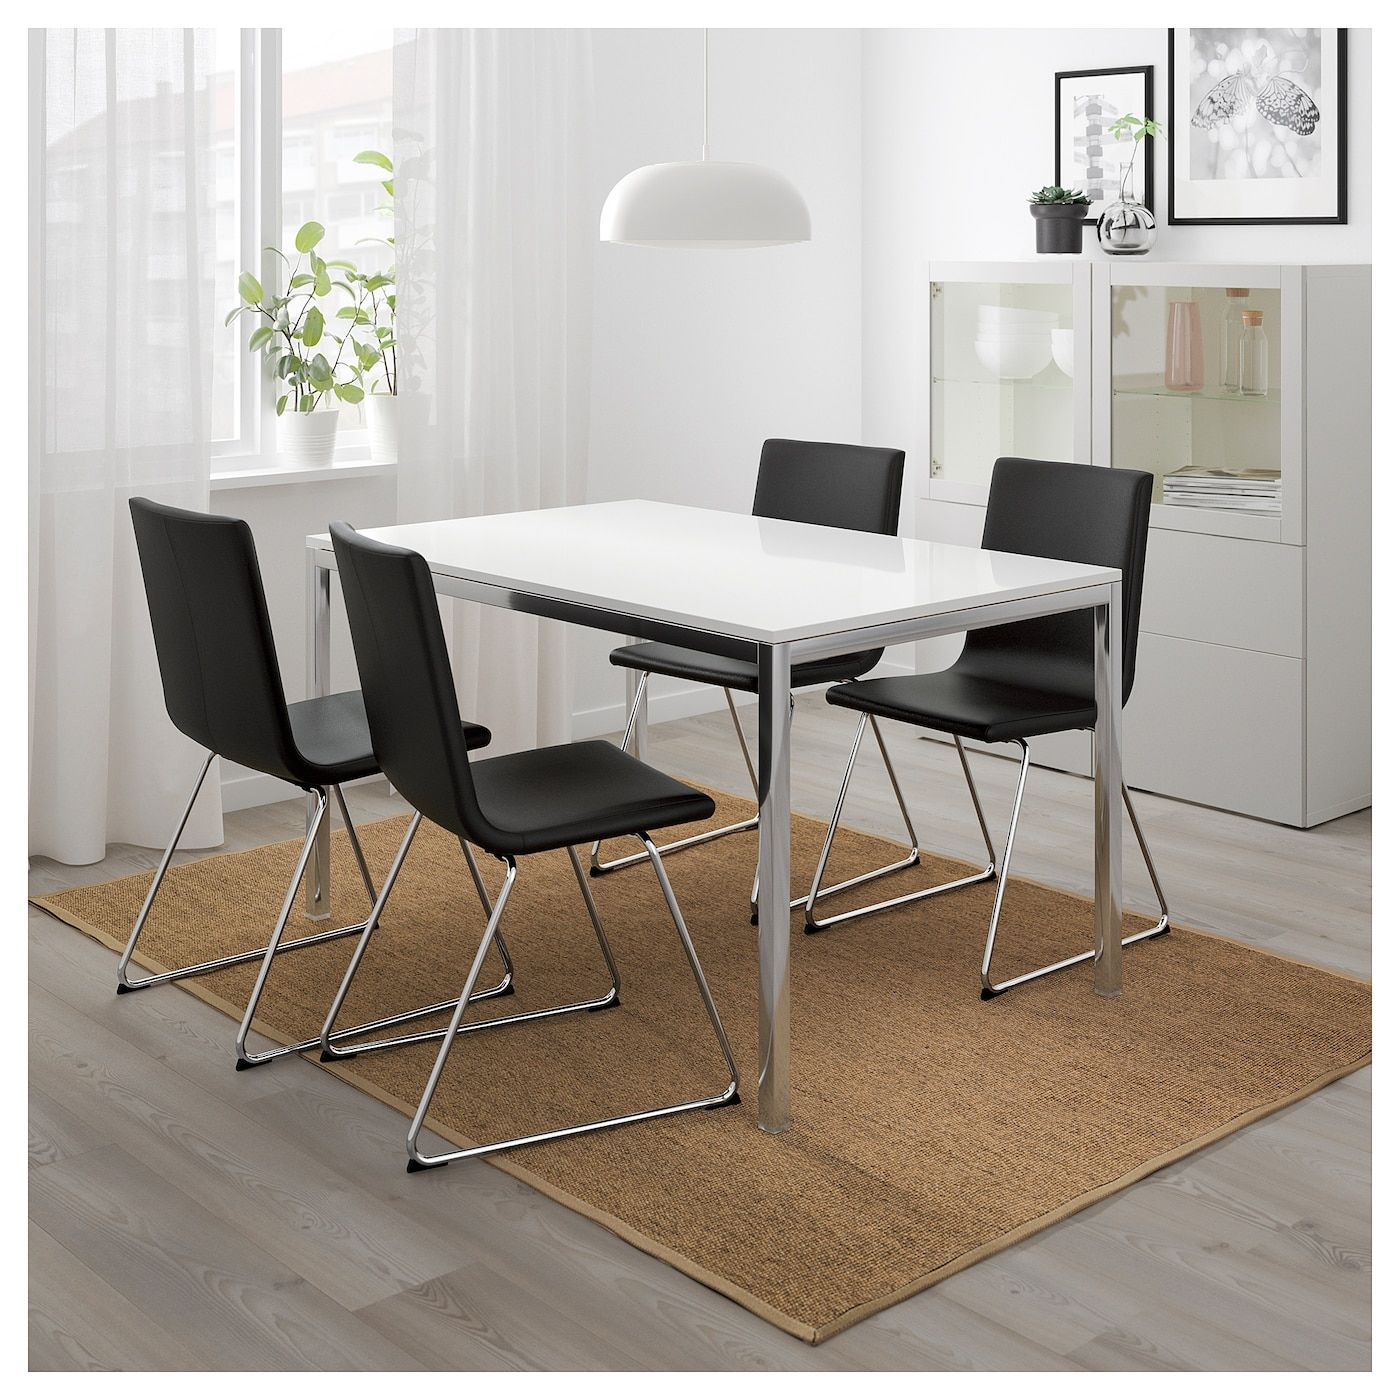 TORSBY / VOLFGANG Table and 4 chairs - high-gloss white ...